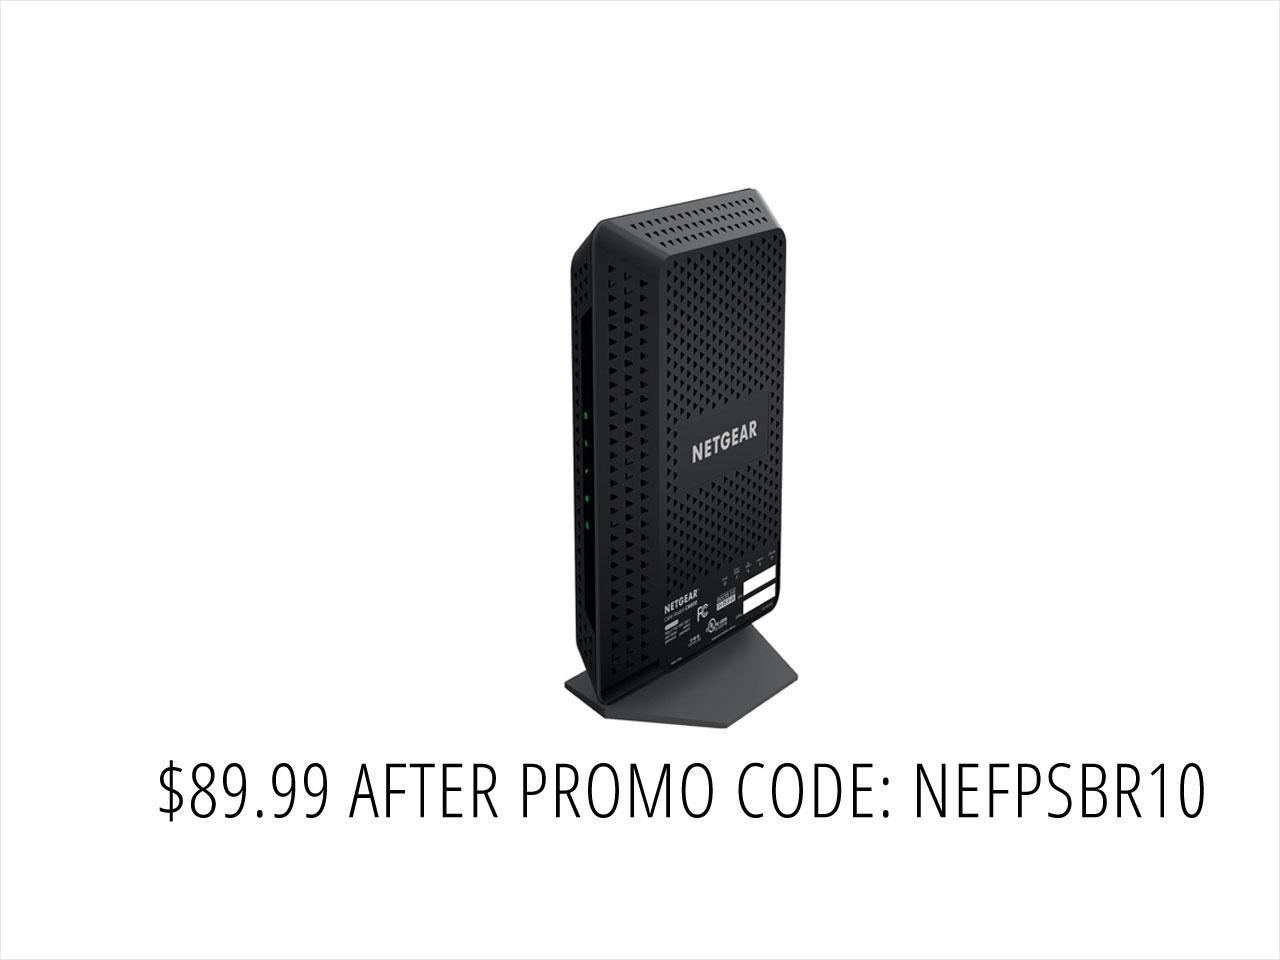 NETGEAR CM600 24 x 8 960 Mbps DOCSIS 3.0 High Speed Cable Modem Certified by Comcast XFINITY, Time Warner, and Other Service Providers